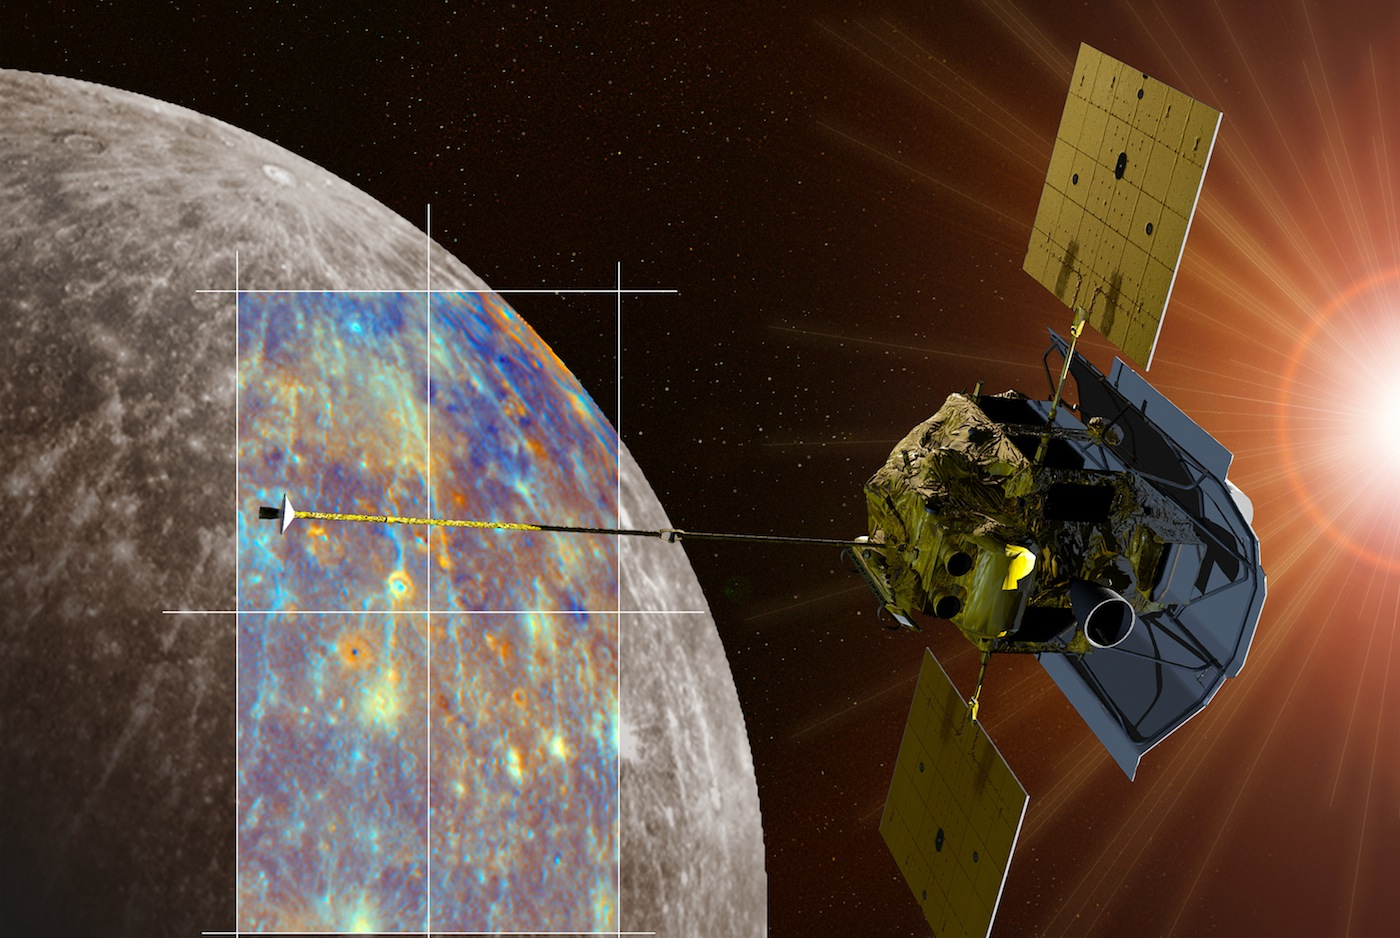 A depiction of the MESSENGER spacecraft is shown passing near the crater Hokusai and its extensive system of rays. Both the monochrome and enhanced color views of Mercury were obtained during MESSENGER's second Mercury flyby. Credit: NASA/Johns Hopkins University Applied Physics Laboratory/Carnegie Institution of Washington